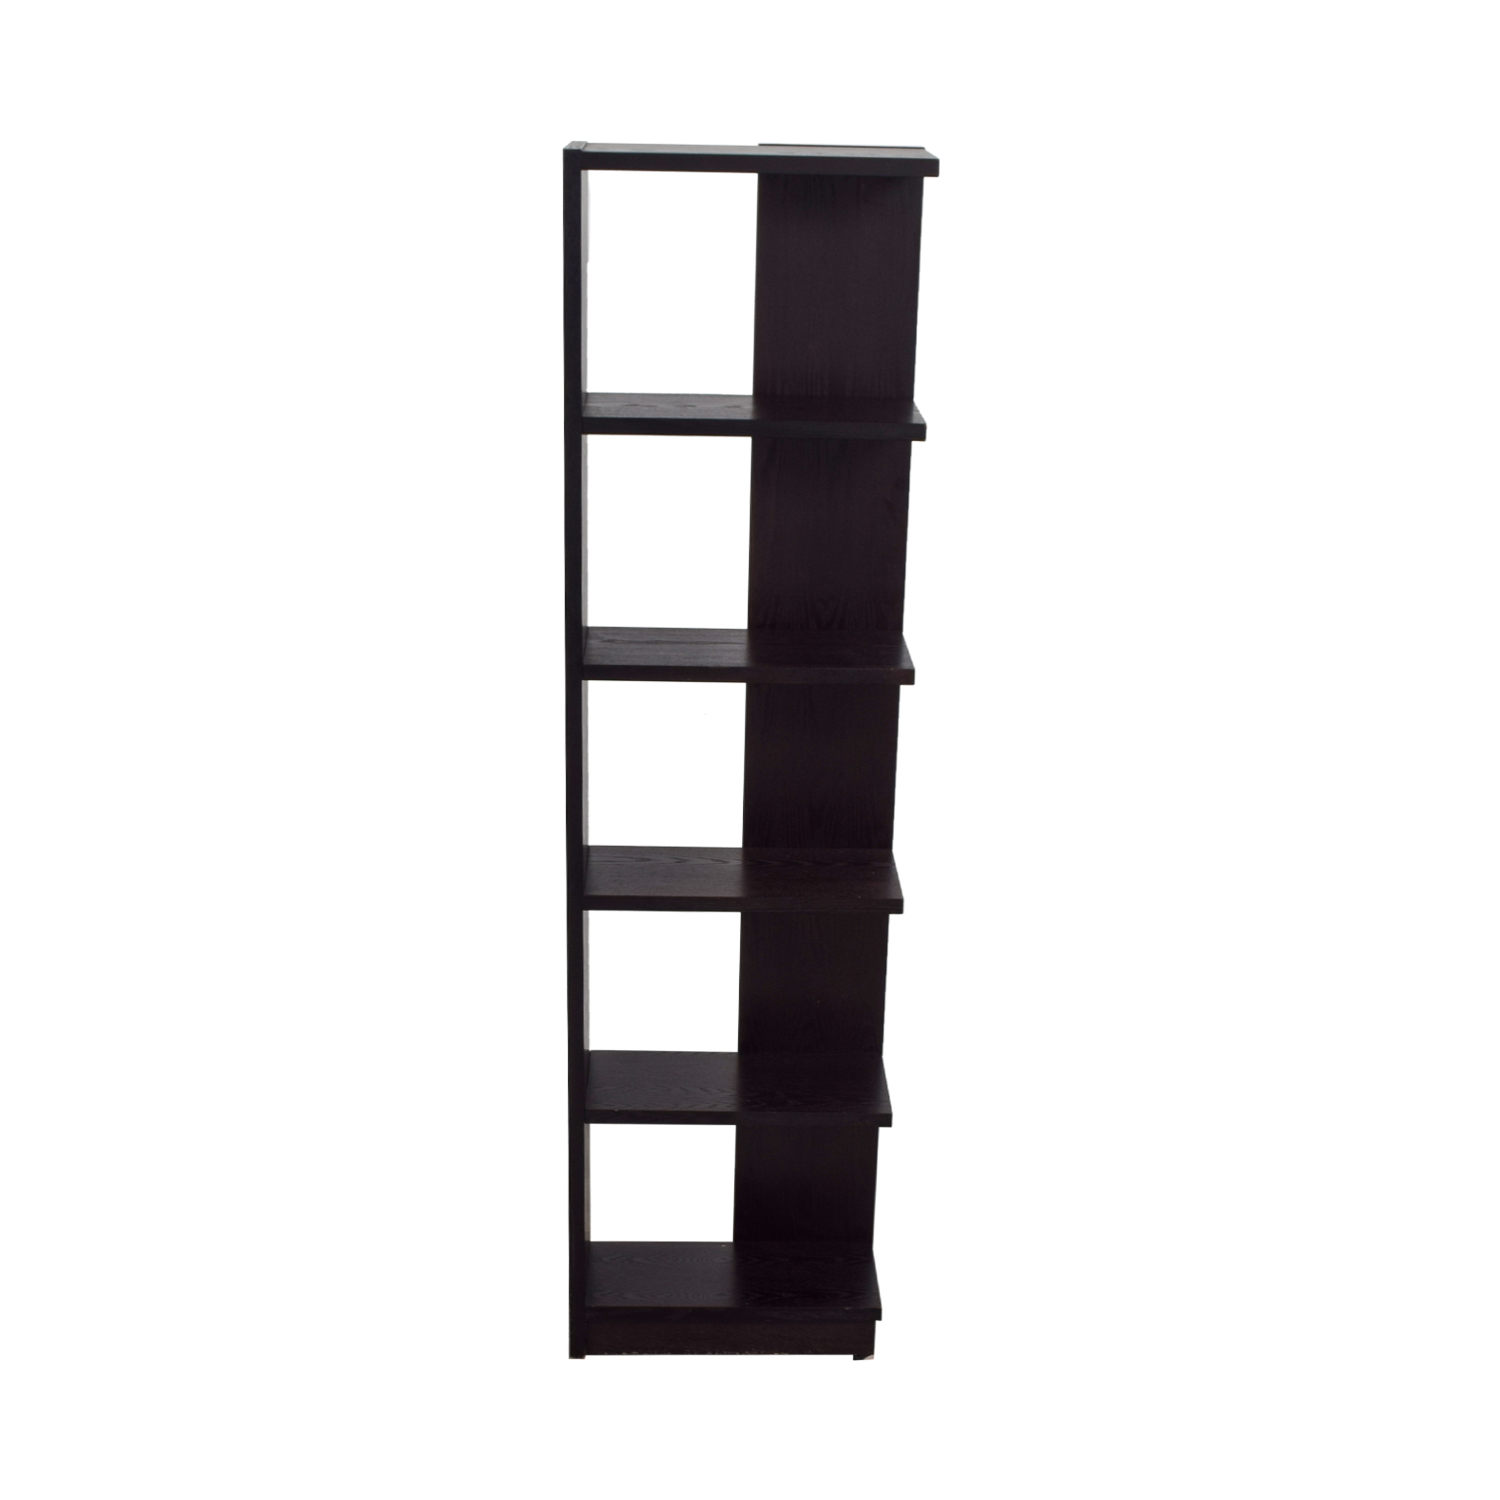 buy Crate & Barrel Asymmetric Bookcase Crate & Barrel Bookcases & Shelving